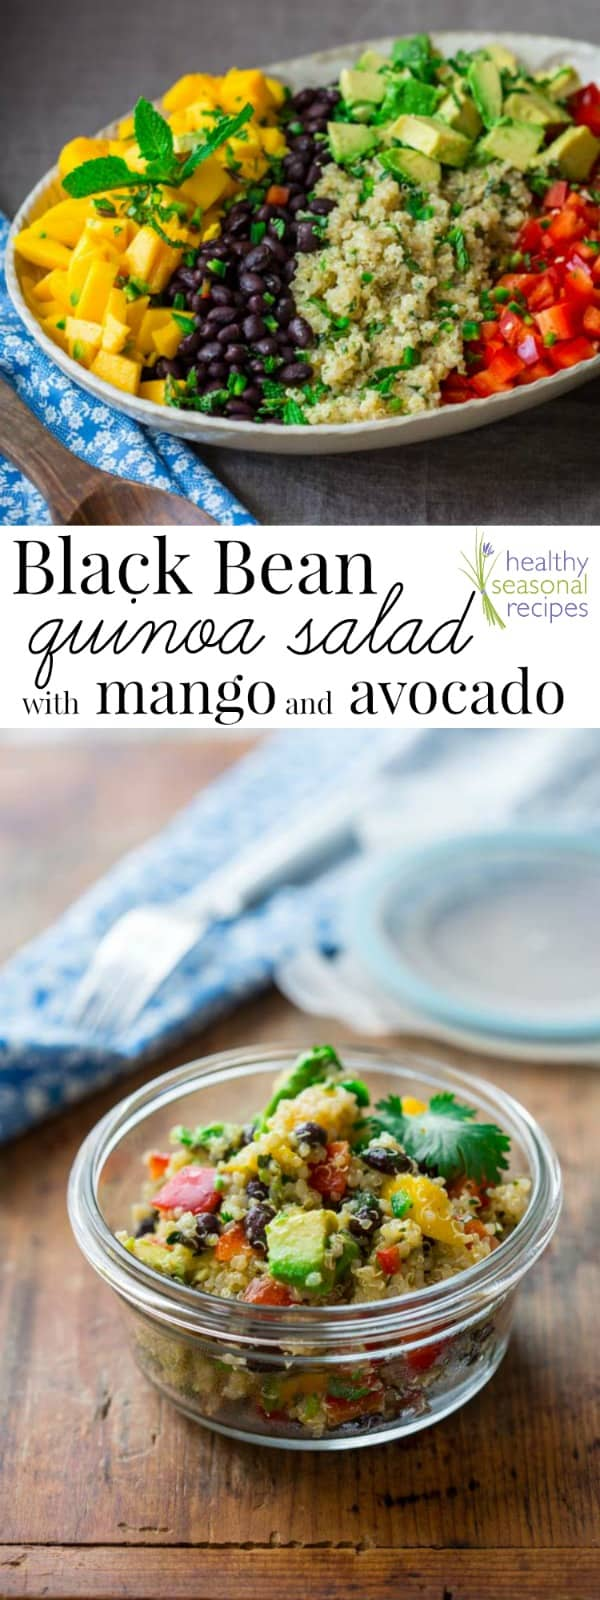 colorful Quinoa Salad photo collage with text